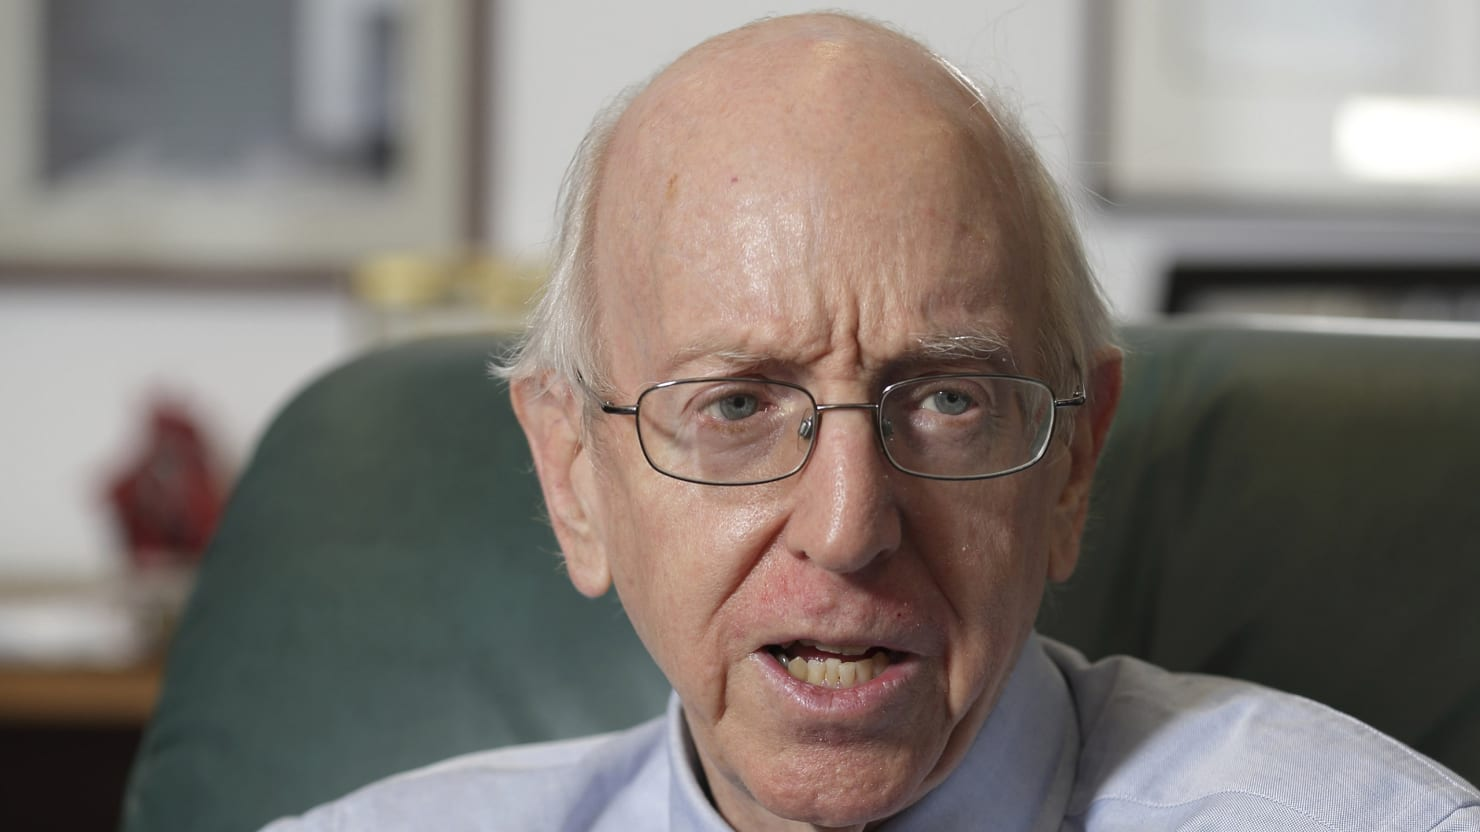 Why Judge Posner Changed His Mind